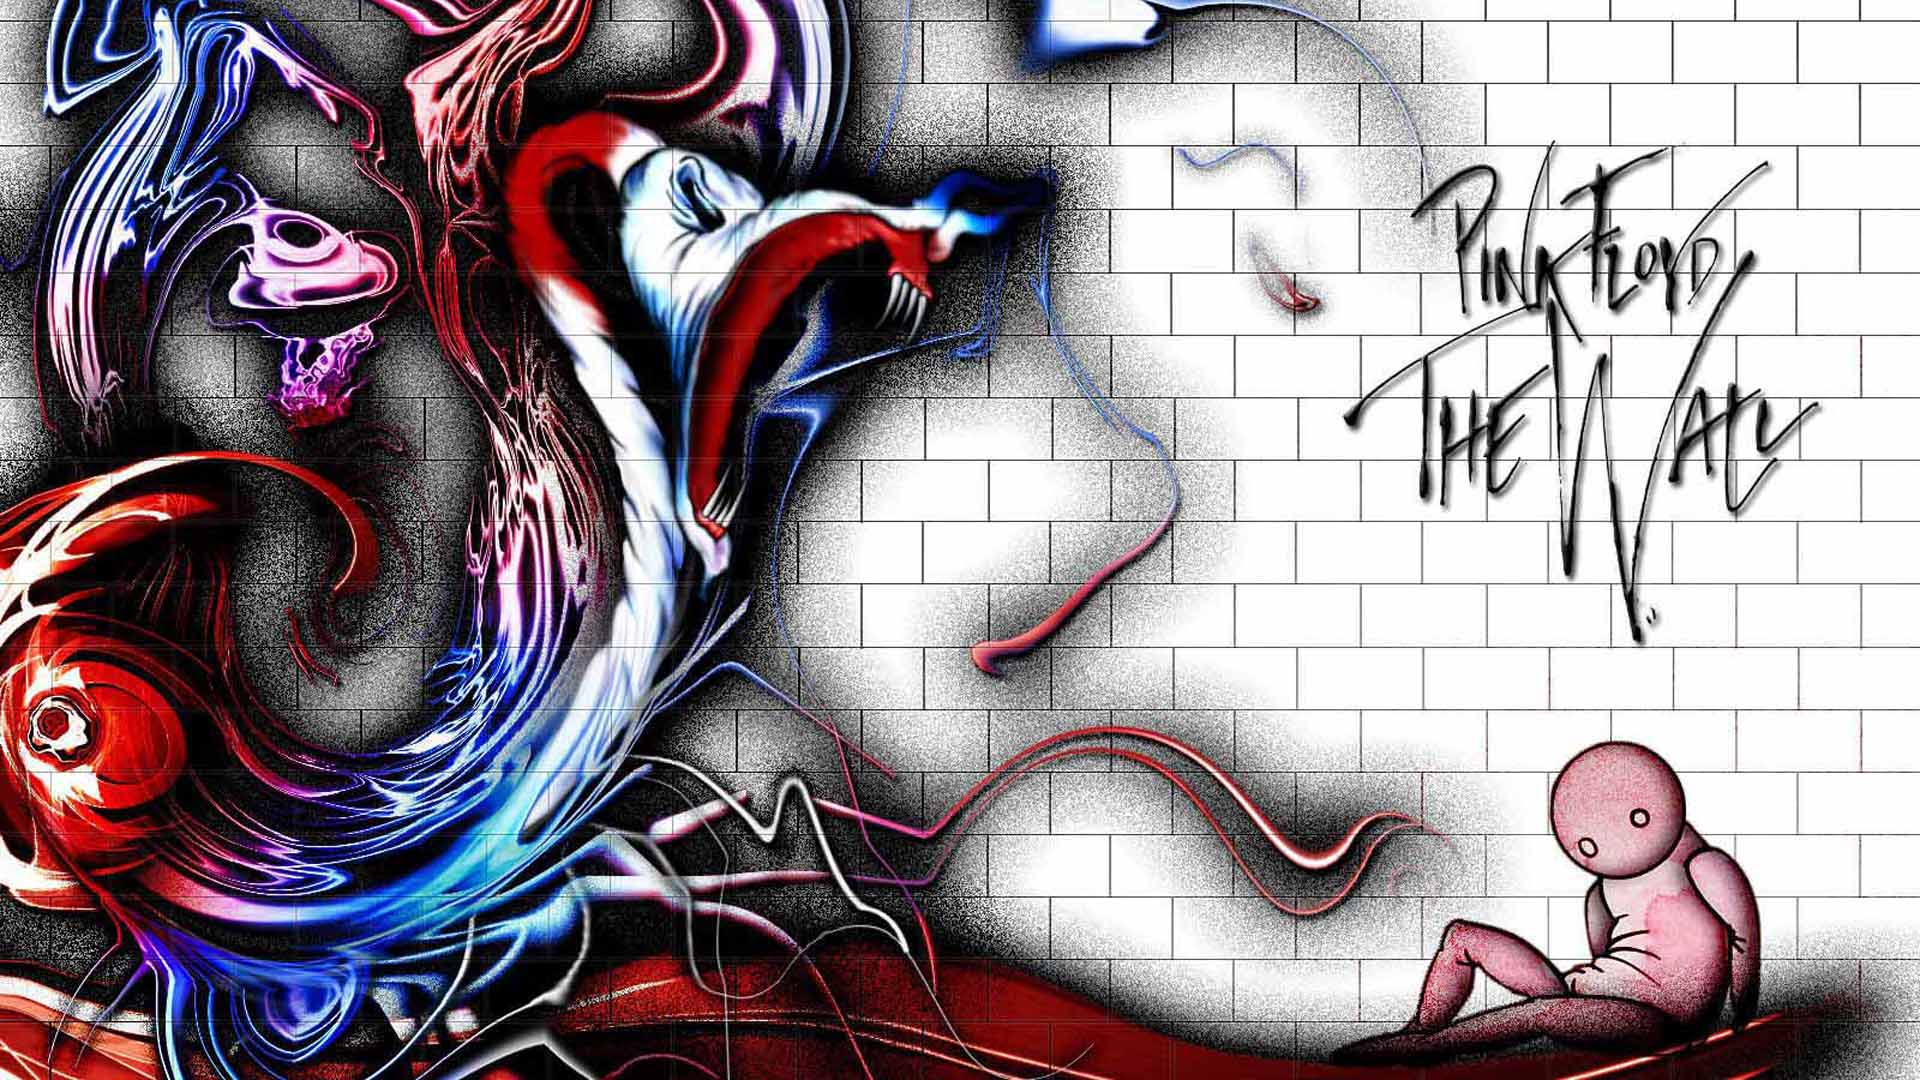 THE WALL – PINK FLOYD